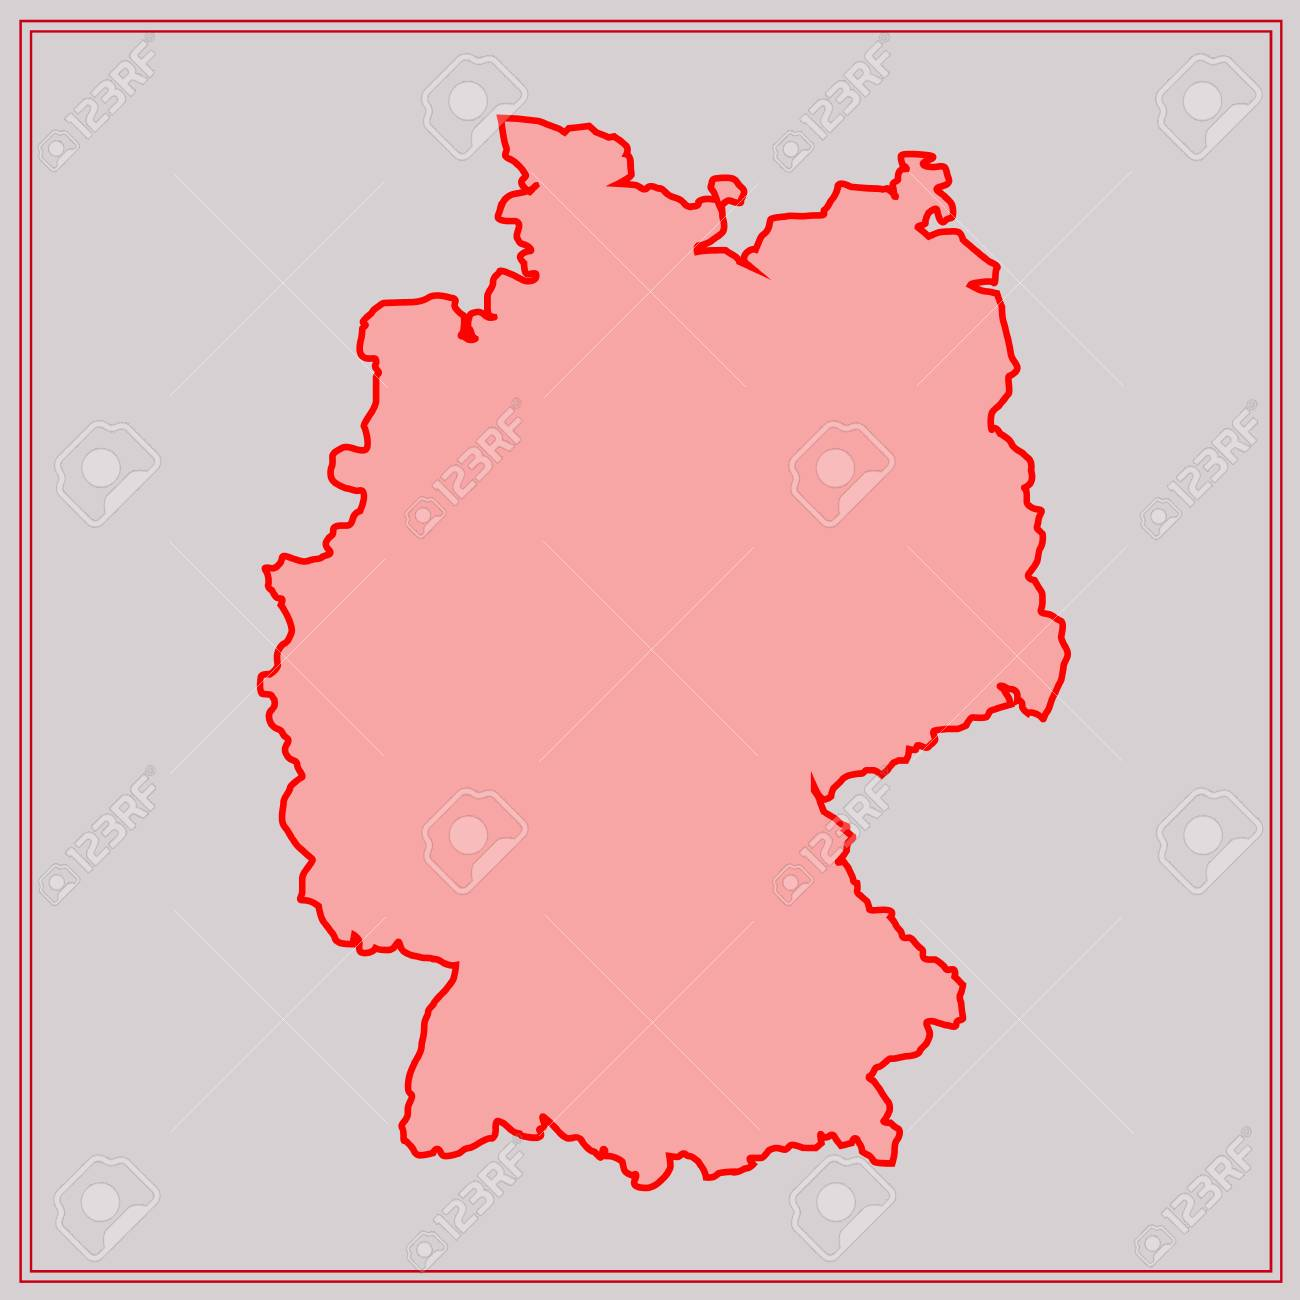 Bright map and flag of Germany. Illustration. on south sudan flag and map, england flag and map, slovakia flag and map, mozambique flag and map, british flag and map, iran flag and map, kuwait flag and map, france flag and map, arizona flag and map, malaysia flag and map, israel flag and map, syria flag and map, belize flag and map, portugal flag and map, zambia flag and map, chad flag and map, china flag and map, ireland flag and map, lebanon flag and map, ukraine flag and map,